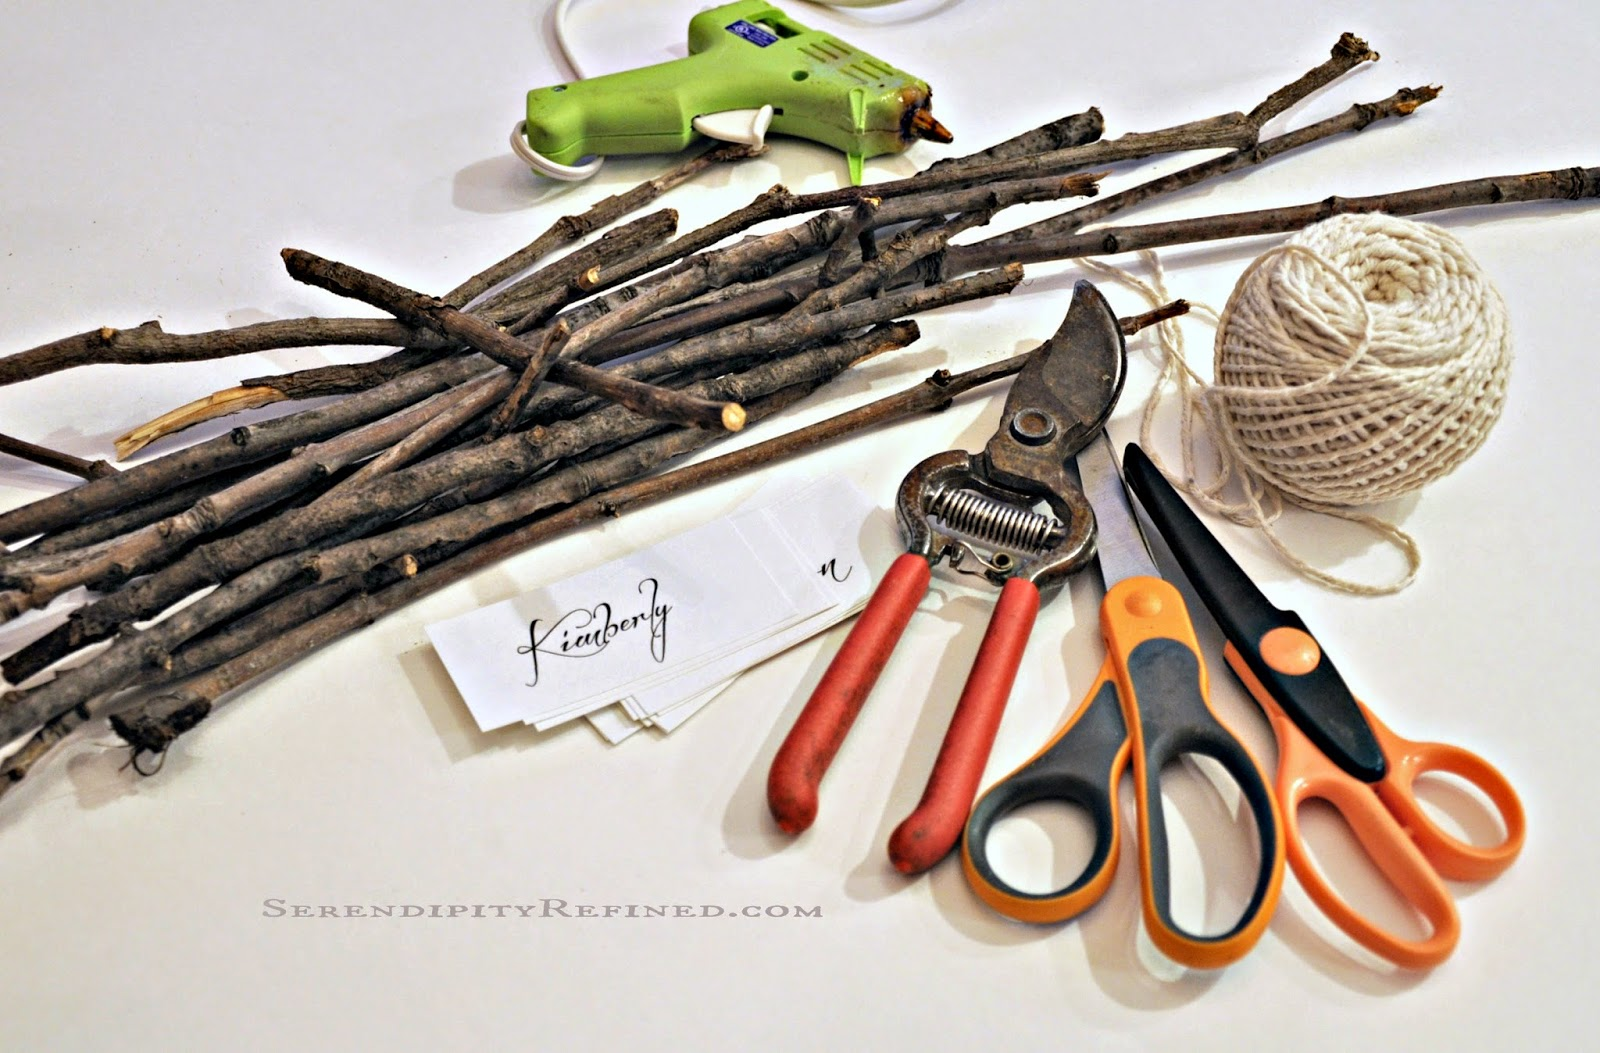 Serendipity Refined Blog: Super Easy Twig Place Card Holders